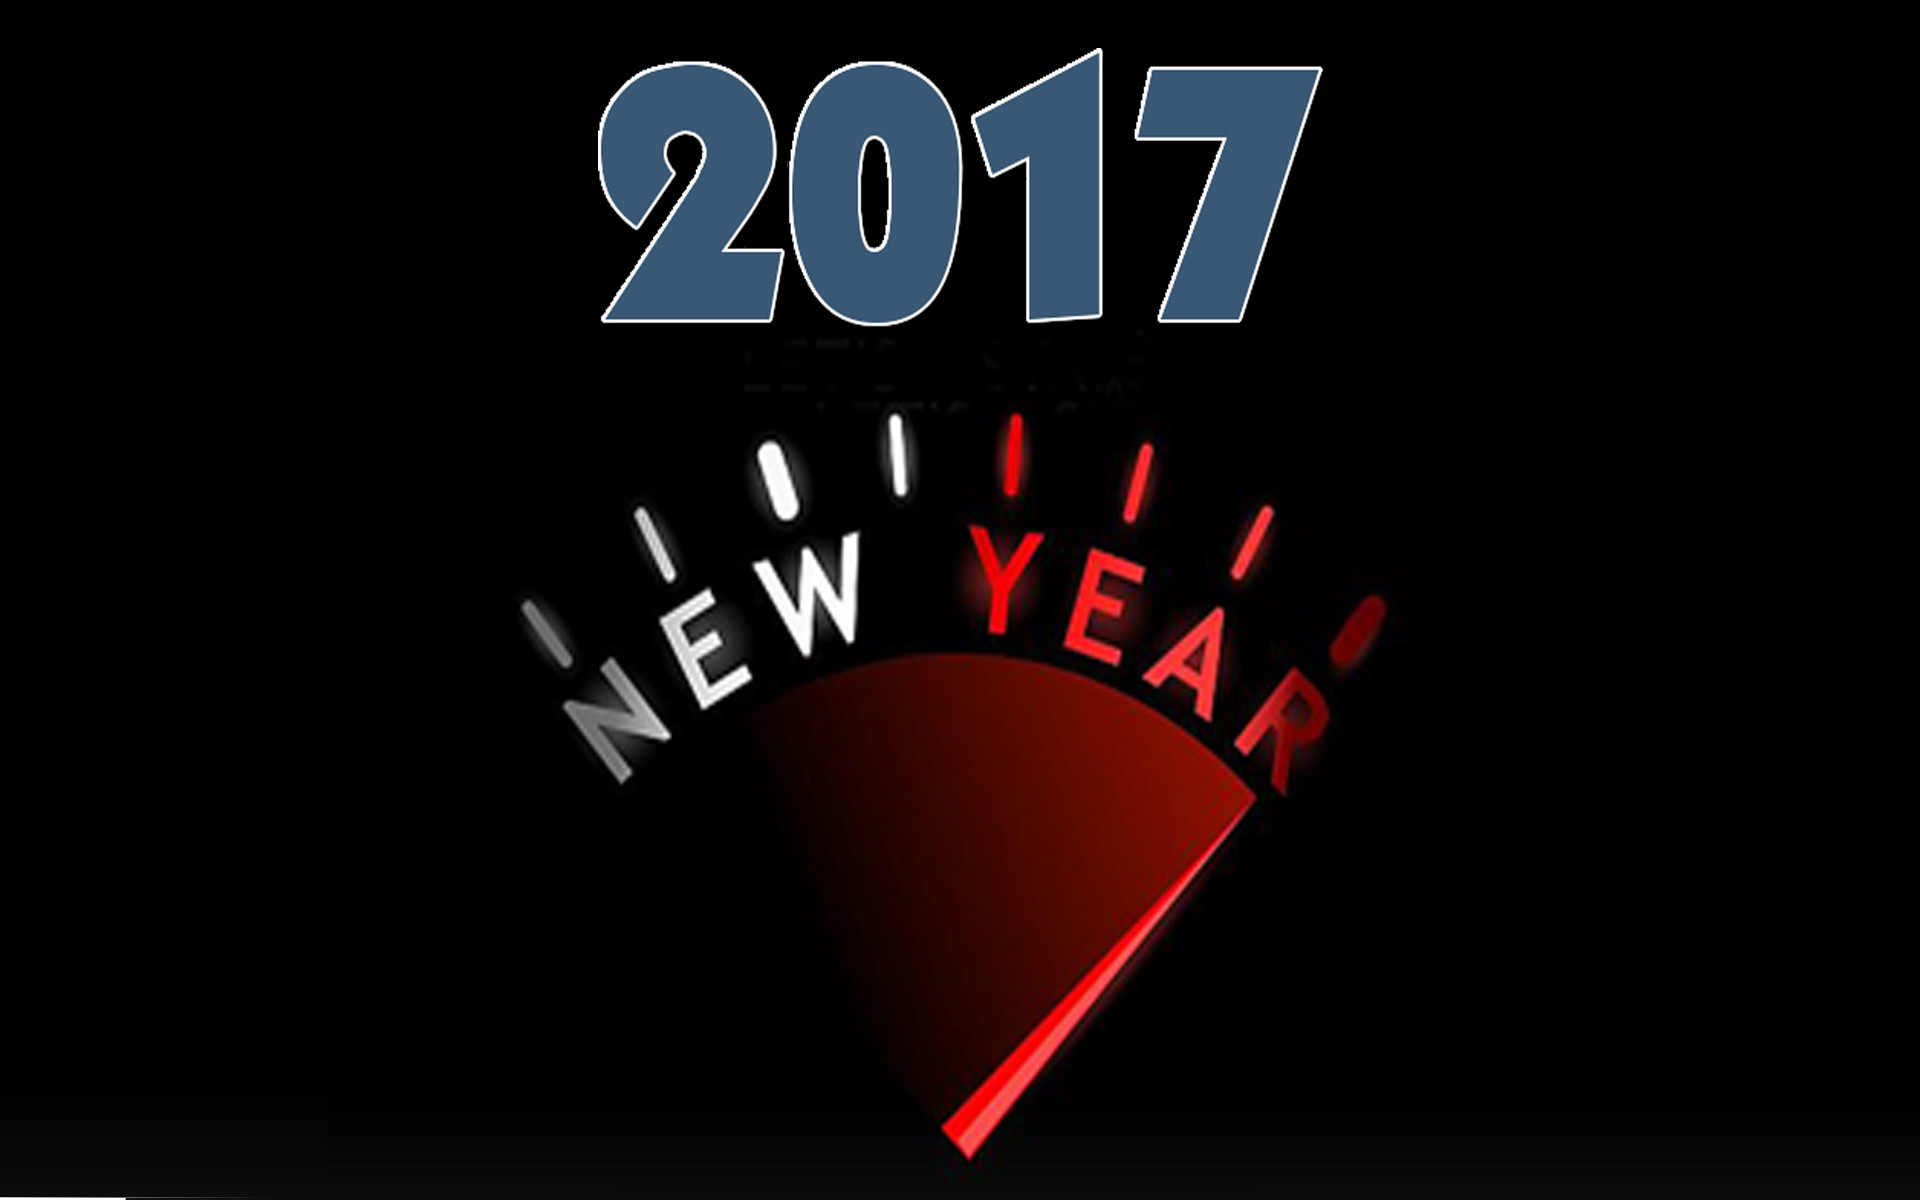 Happy New Year 2017 Wallpapers HD.